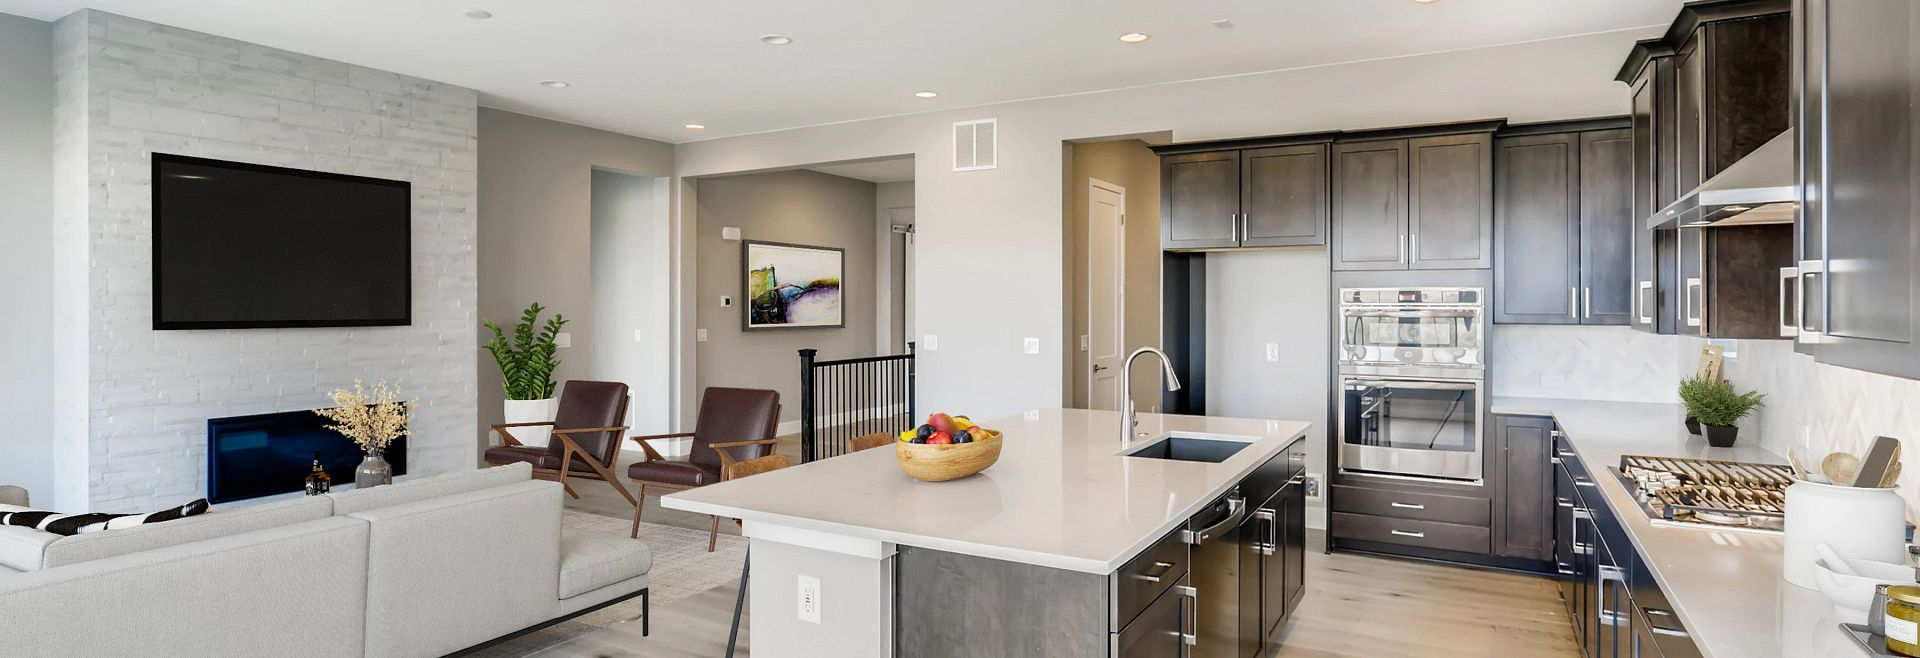 Canyons Reserve Heritage QMI Lot 816 Kitchen + Great Room